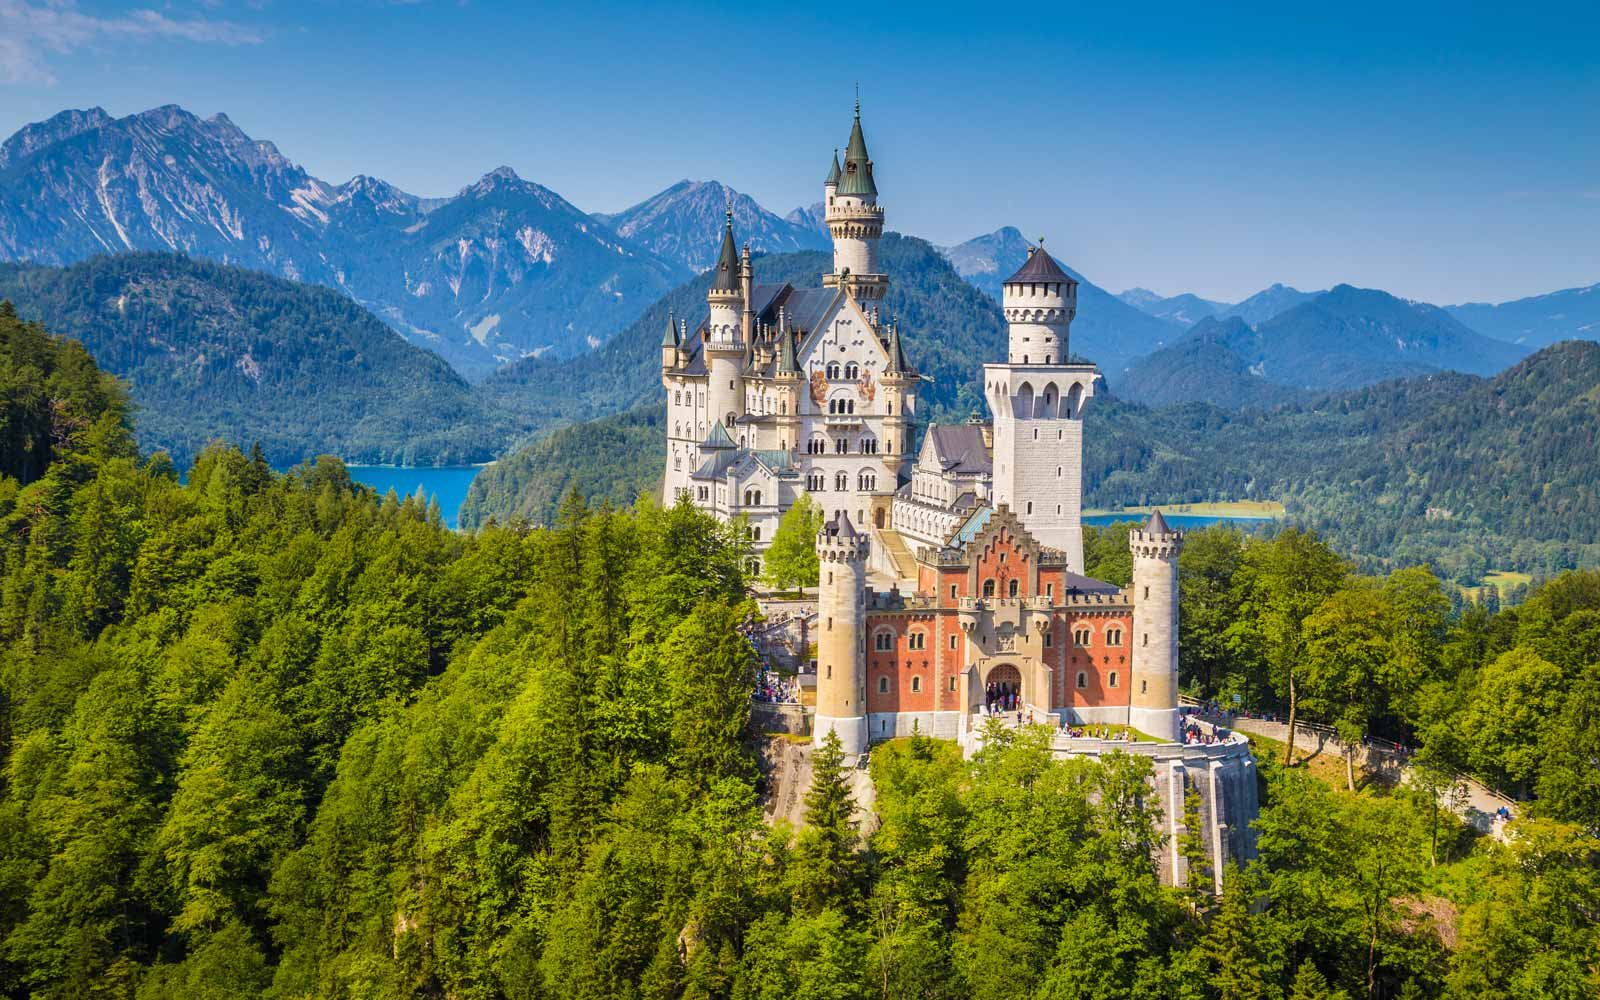 Real Life Places That Inspired Disney